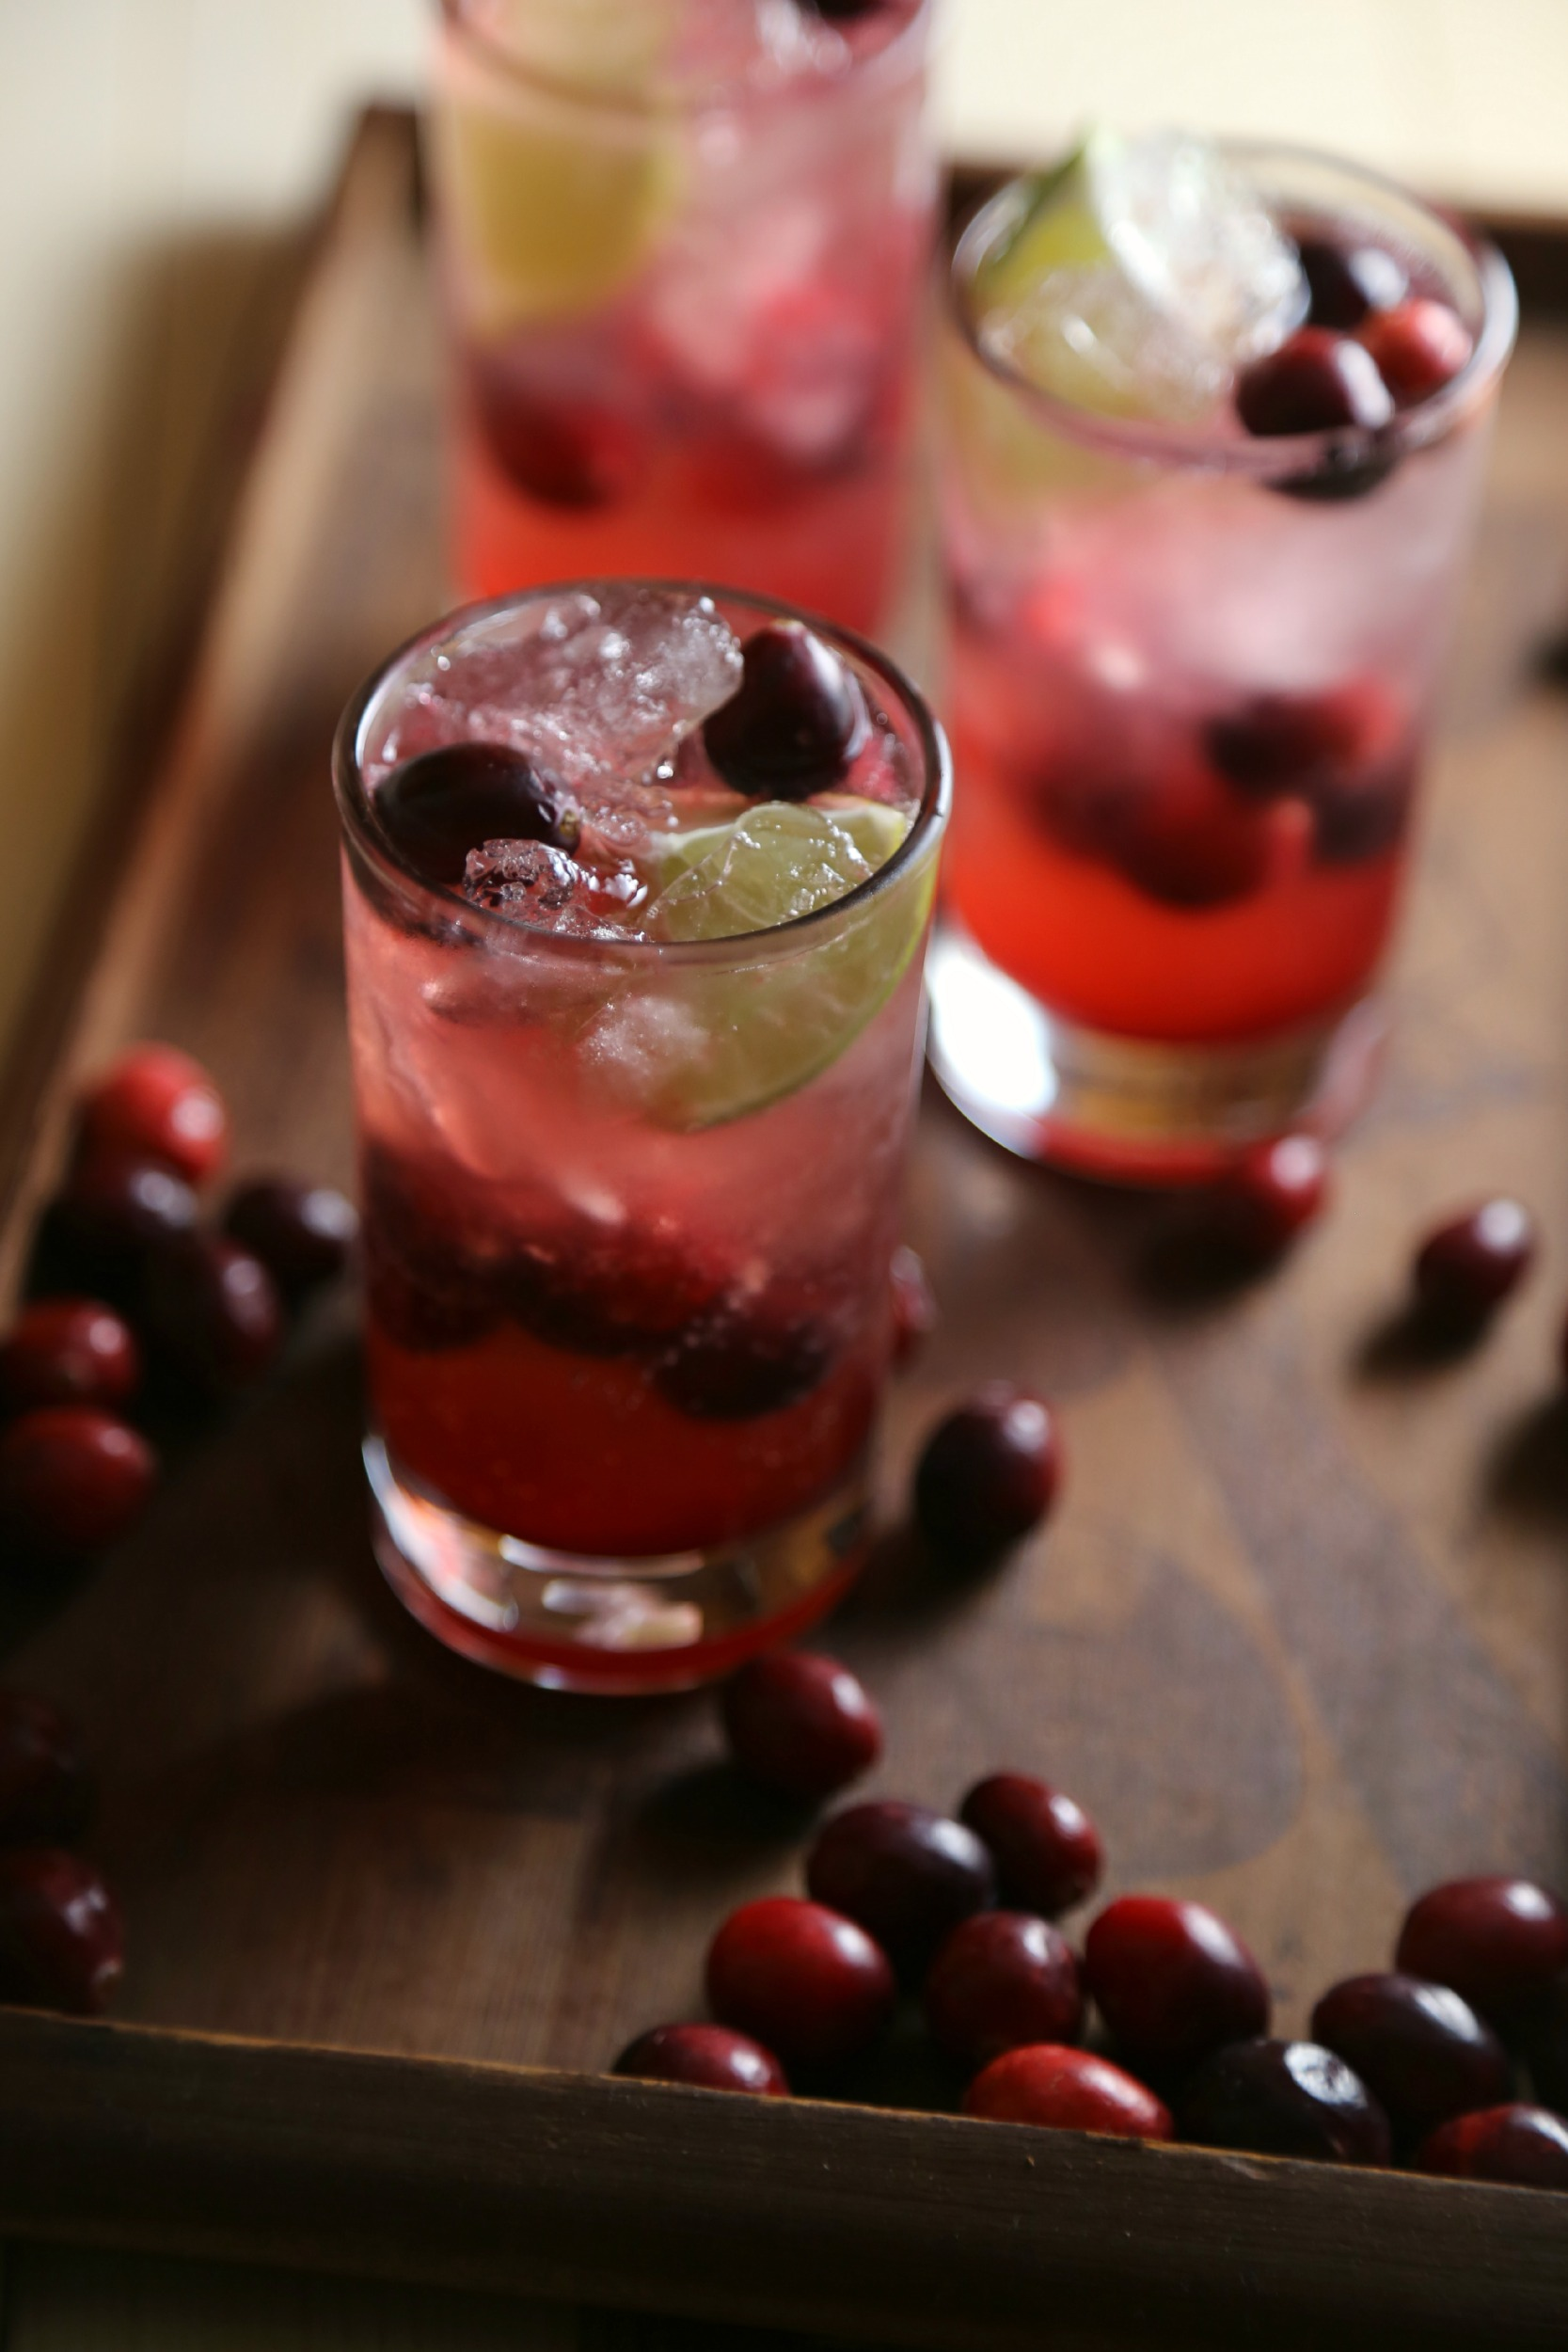 cranberry-chilcano-pisco-cocktail-vianneyrodriguez-sweetlifebake